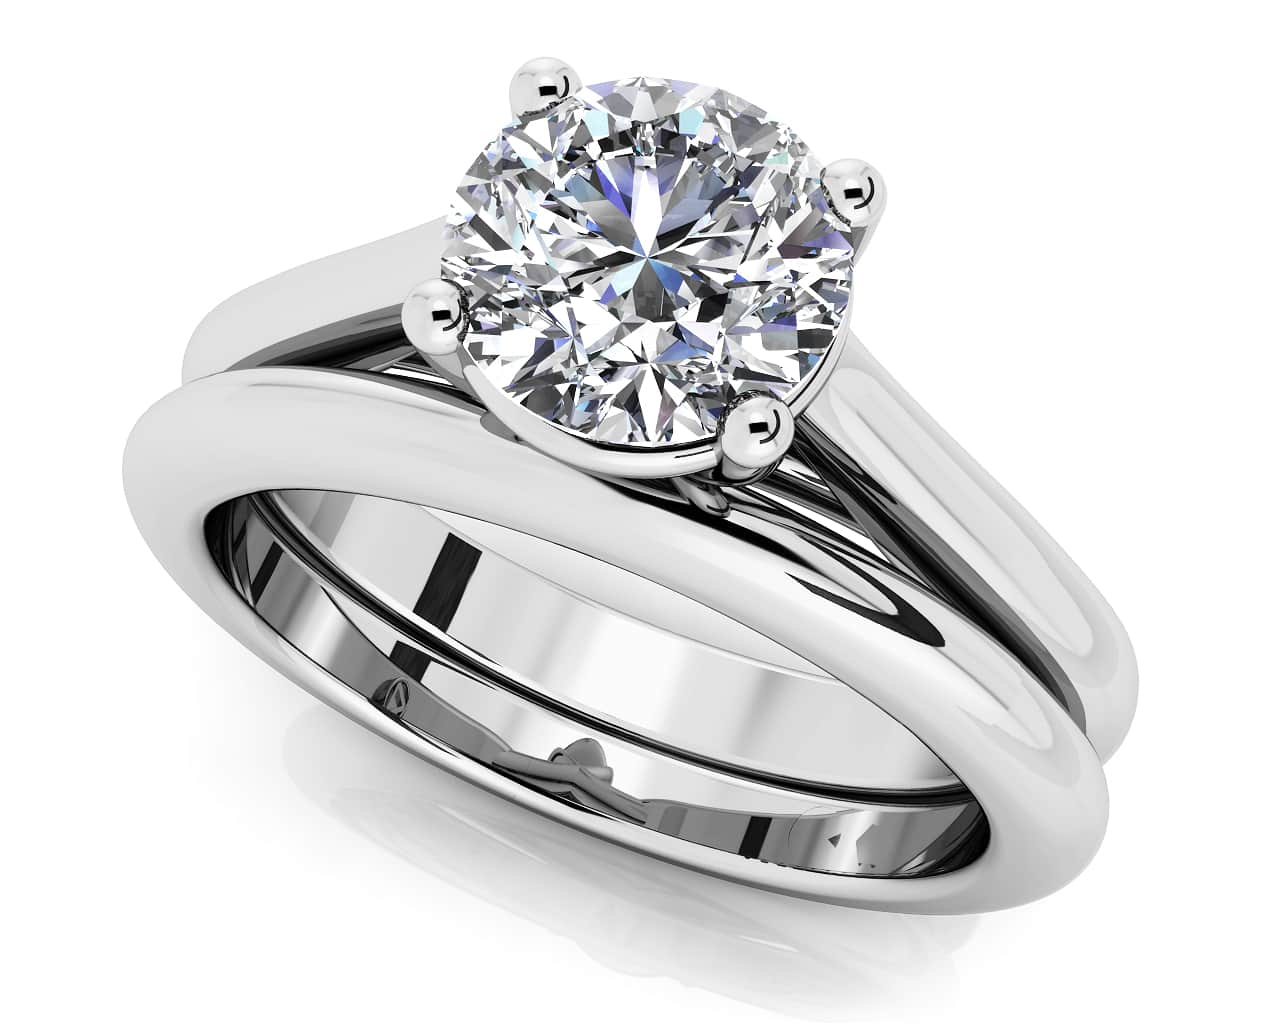 customize your wedding set matching diamond bridal set - Wedding Band And Engagement Ring Set